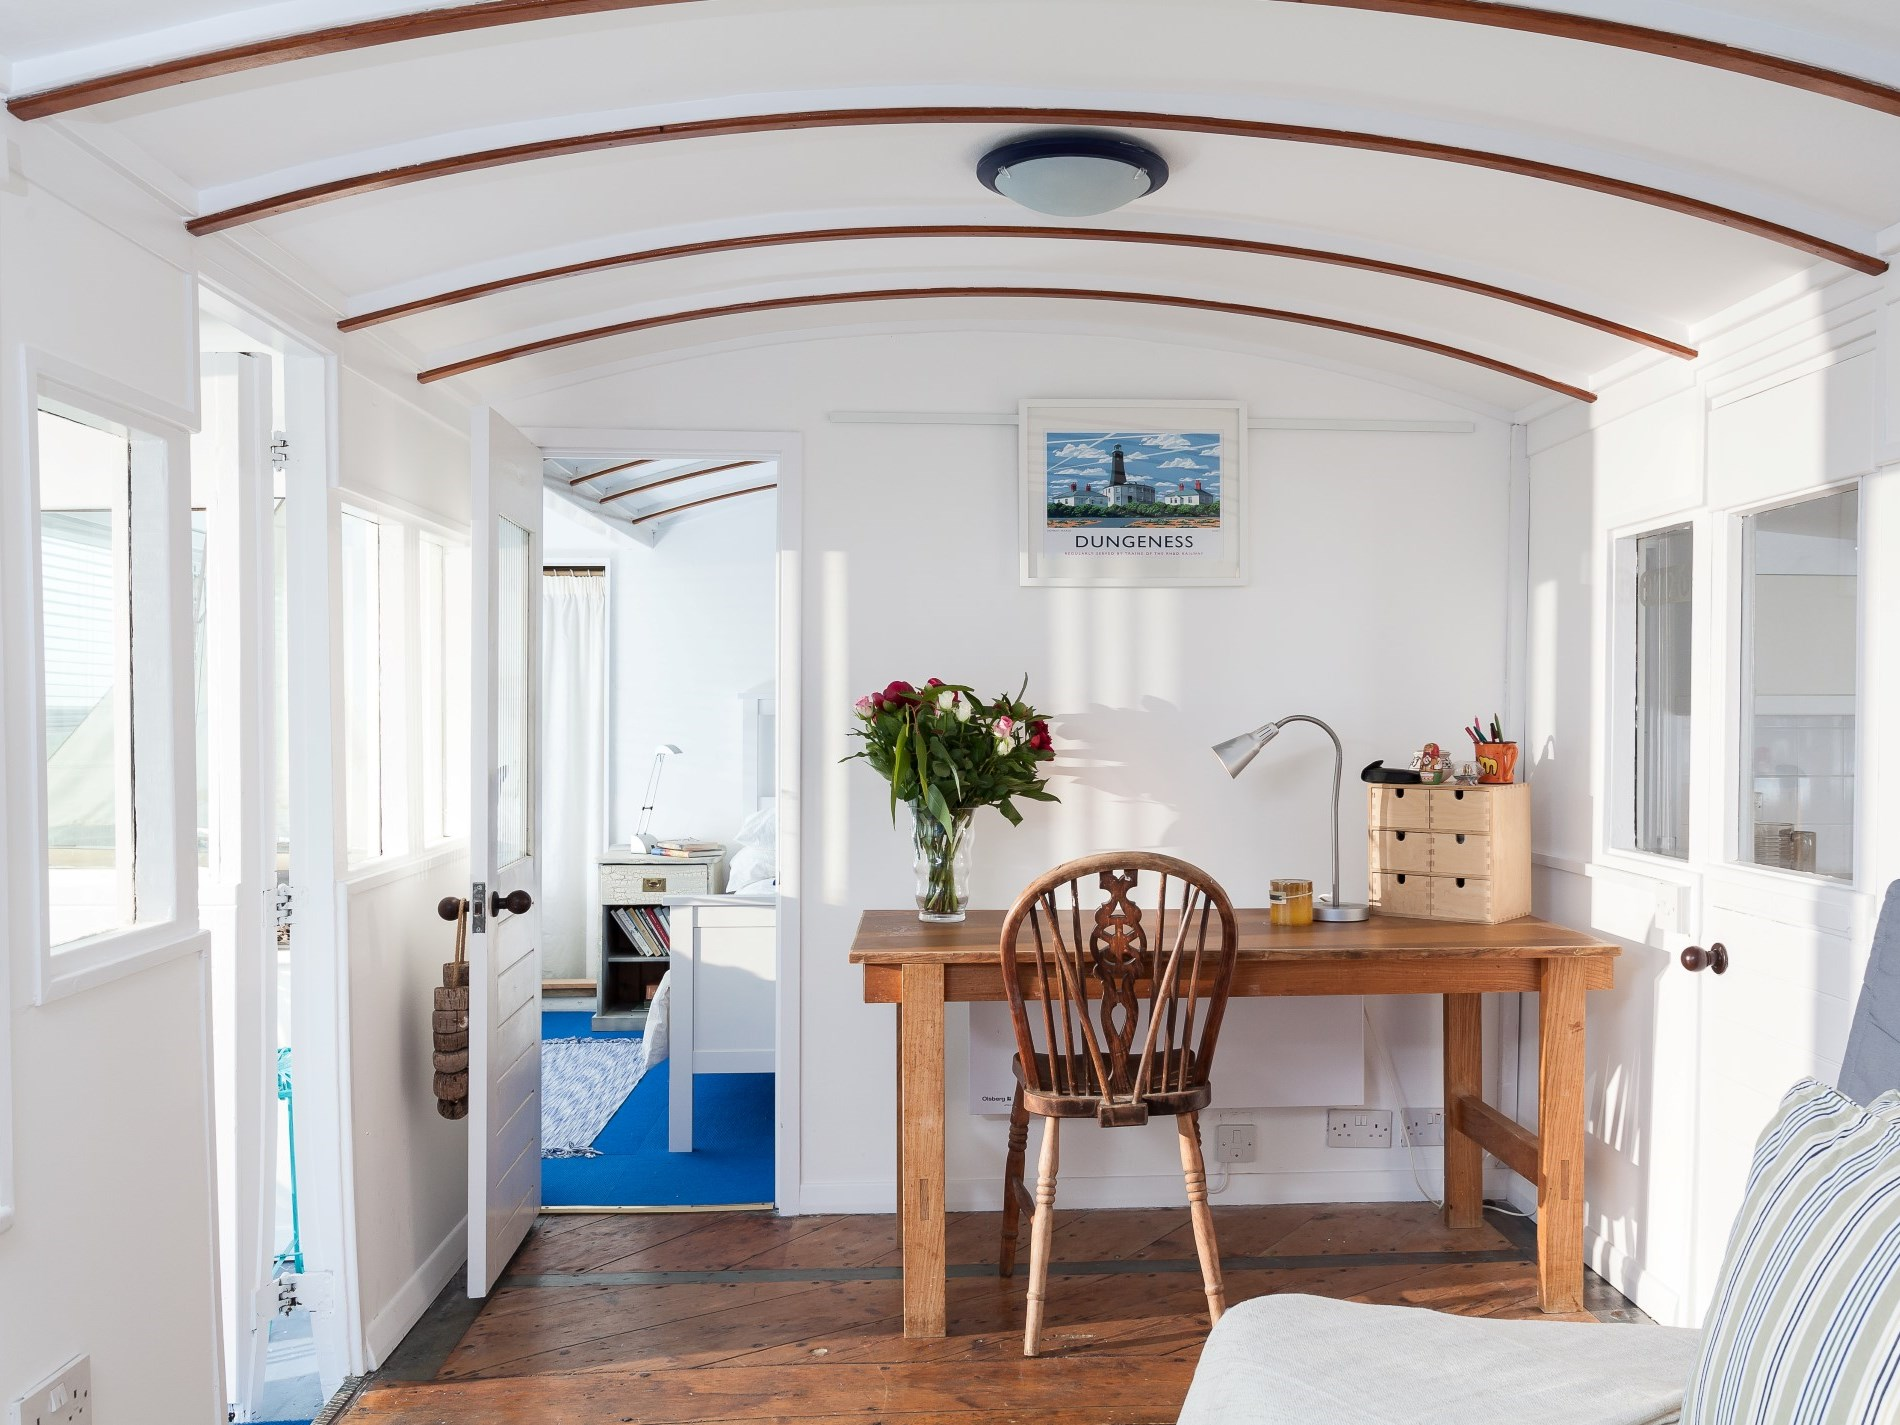 Light and airy accomodation